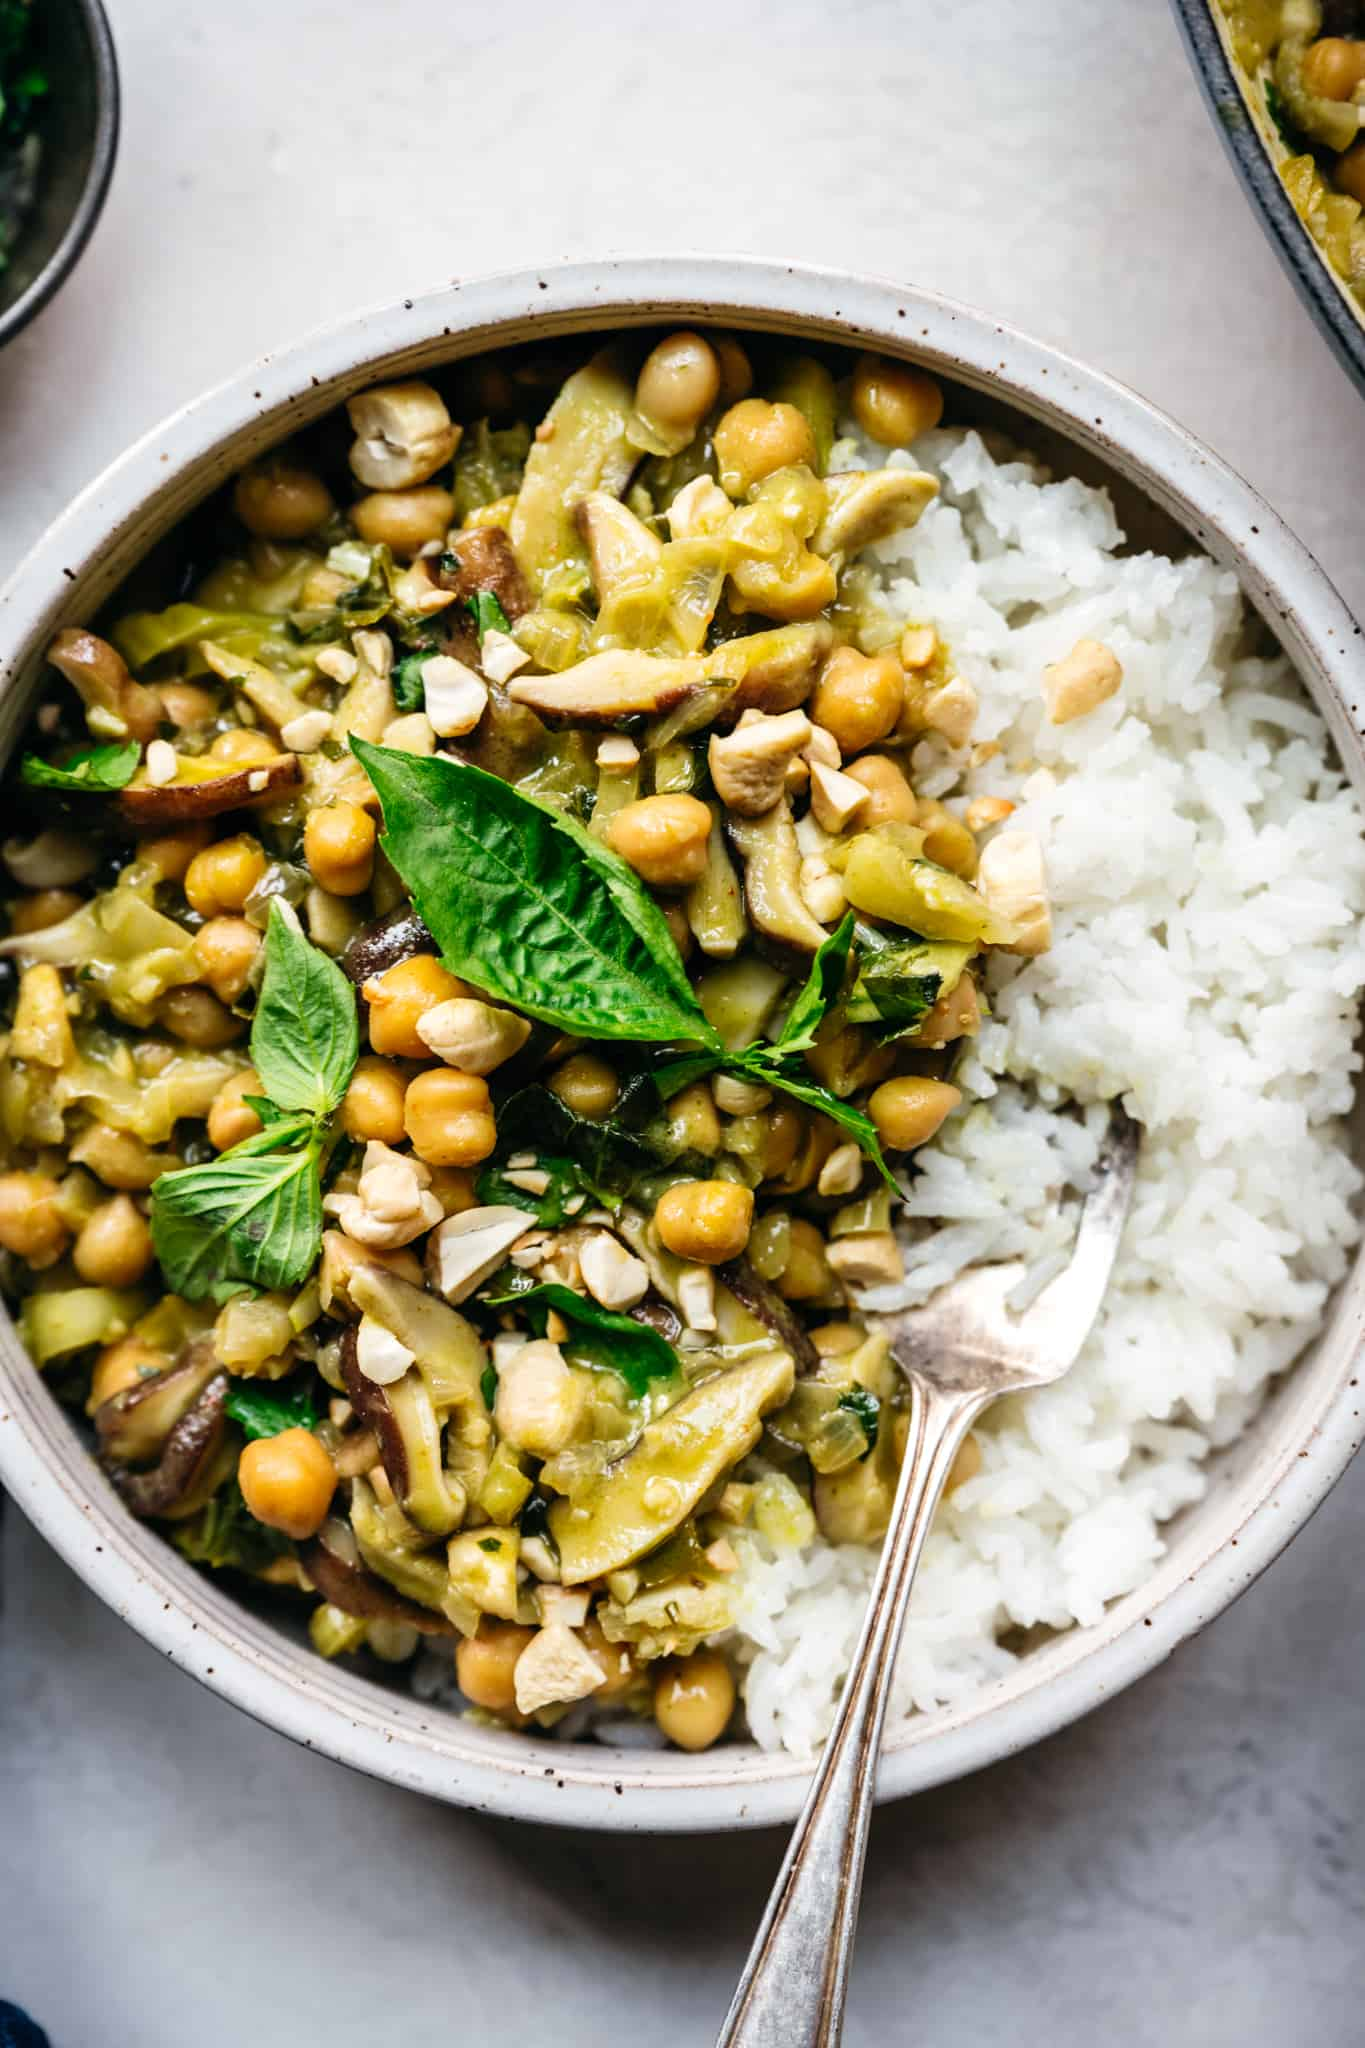 vegan green curry with chickpeas and mushrooms served over white rice in bowl